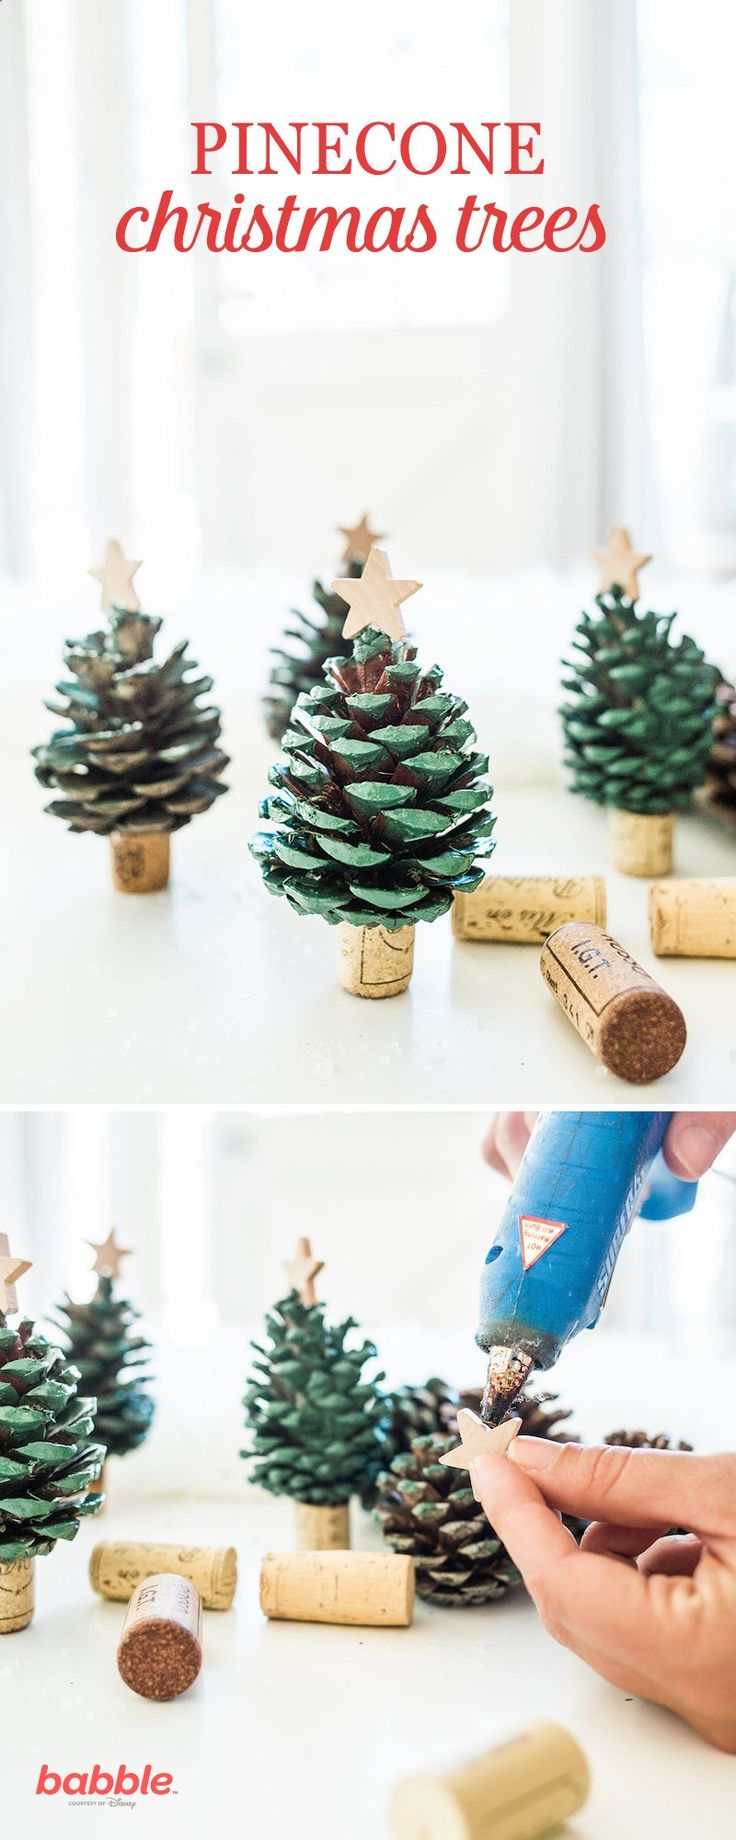 Wine Gifts - Spread some holiday cheer and decorate your home with these DIY Pinecone Christmas Trees. Create your own mini pinecone trees with spray paint and wine corks. Set up a little pine tree forest on the mantle, or take some to a local elderly home for the holidays. Disney is sharing the joy this holiday season by giving to deserving kids and families. To find out ways you can help make your community healthier, happier, and stronger, visit Disney.com/Friends.